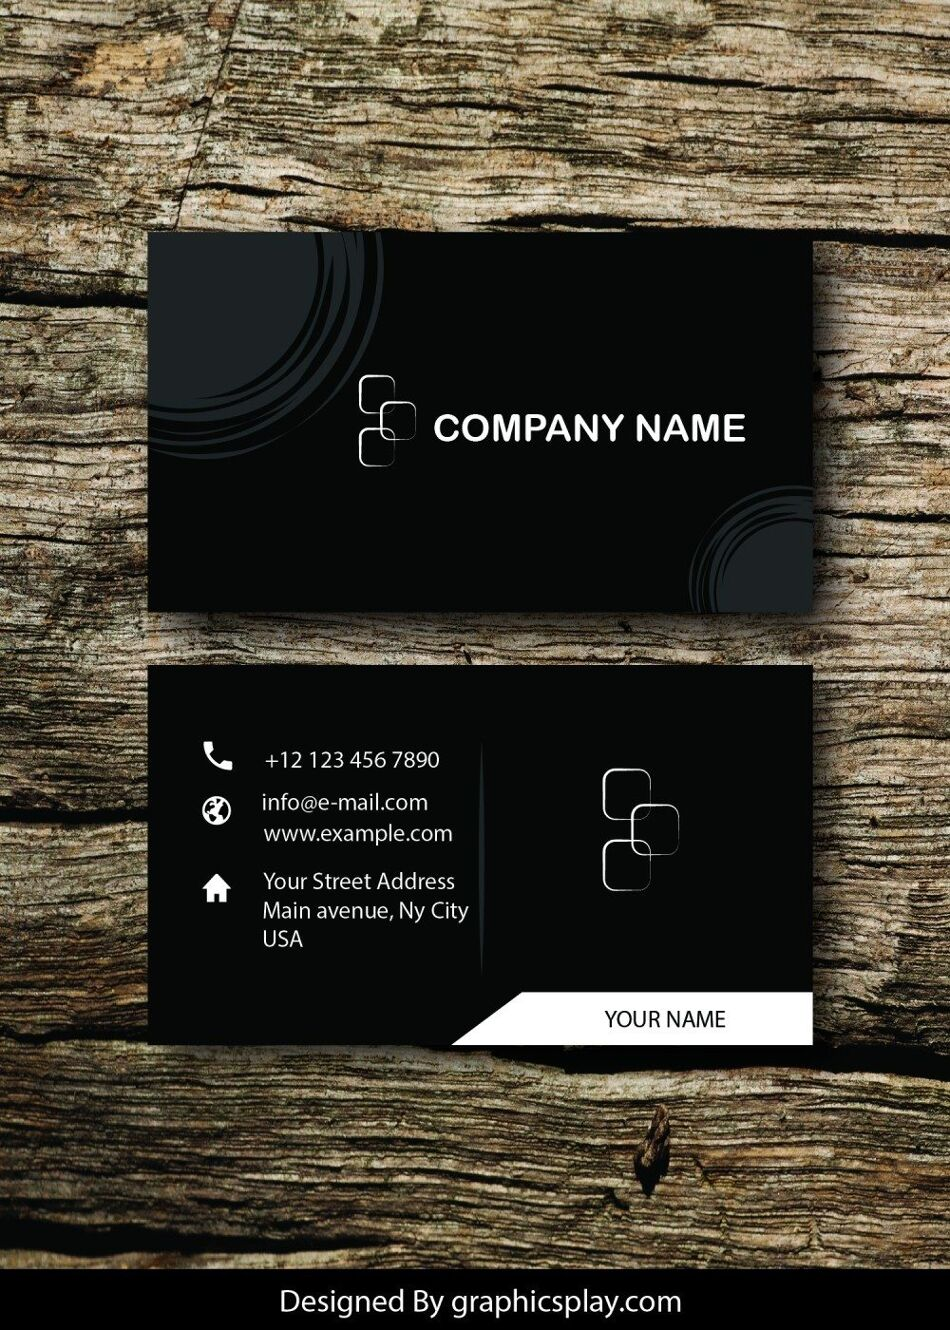 Business Card Design Vector Template - ID 1706 1